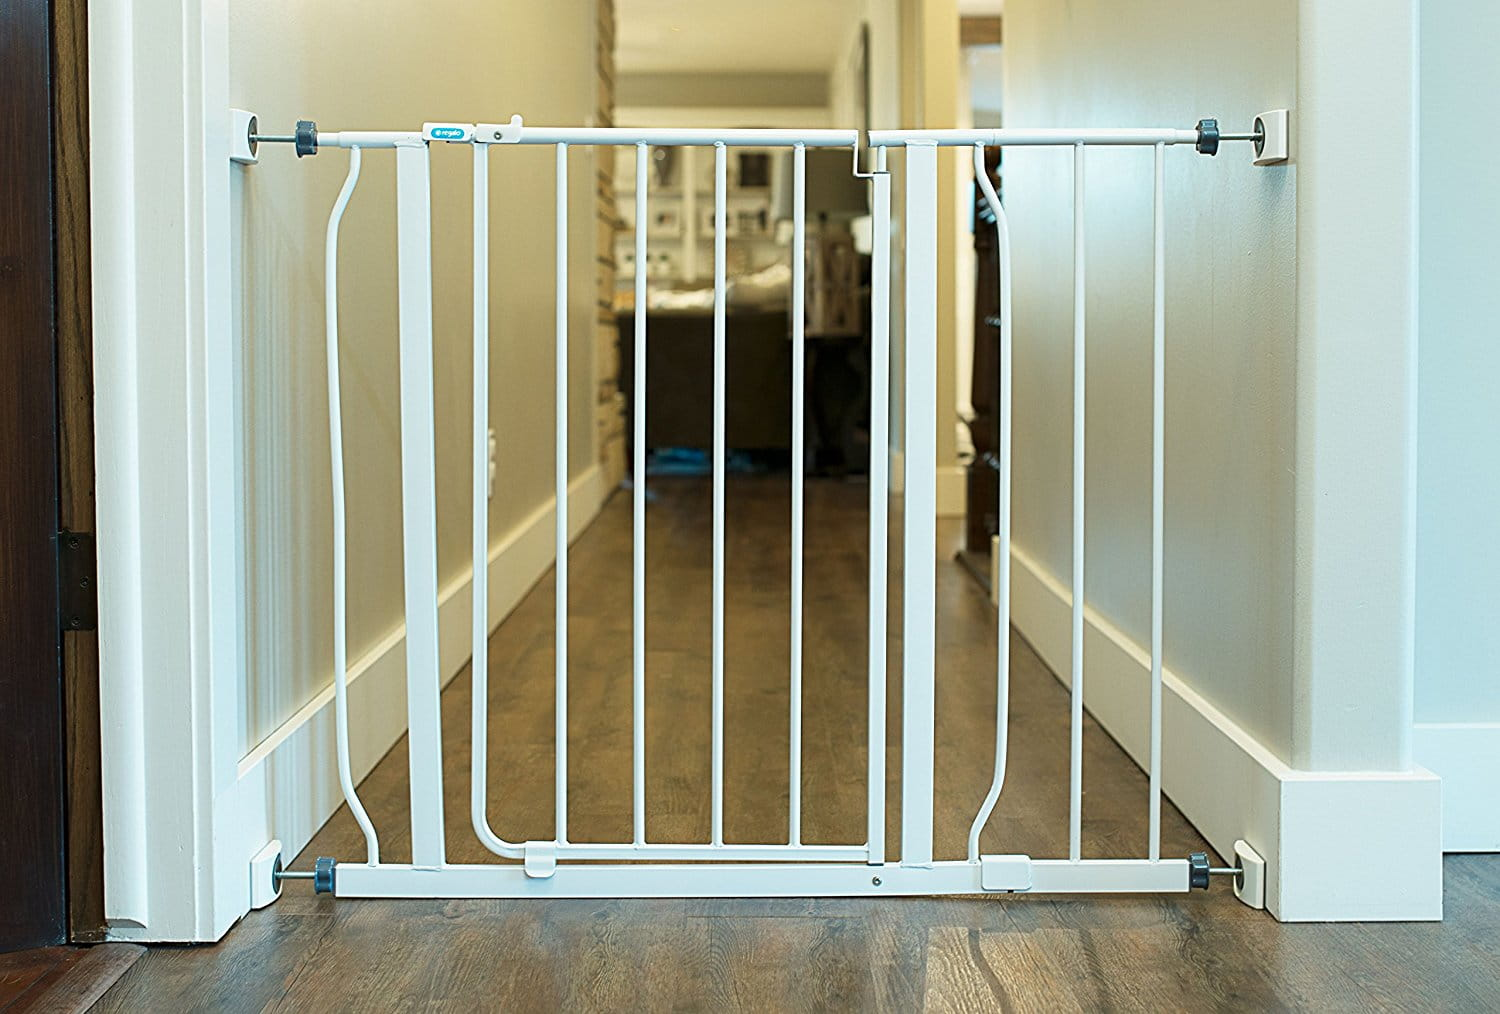 image of wall nanny with safety gate in home